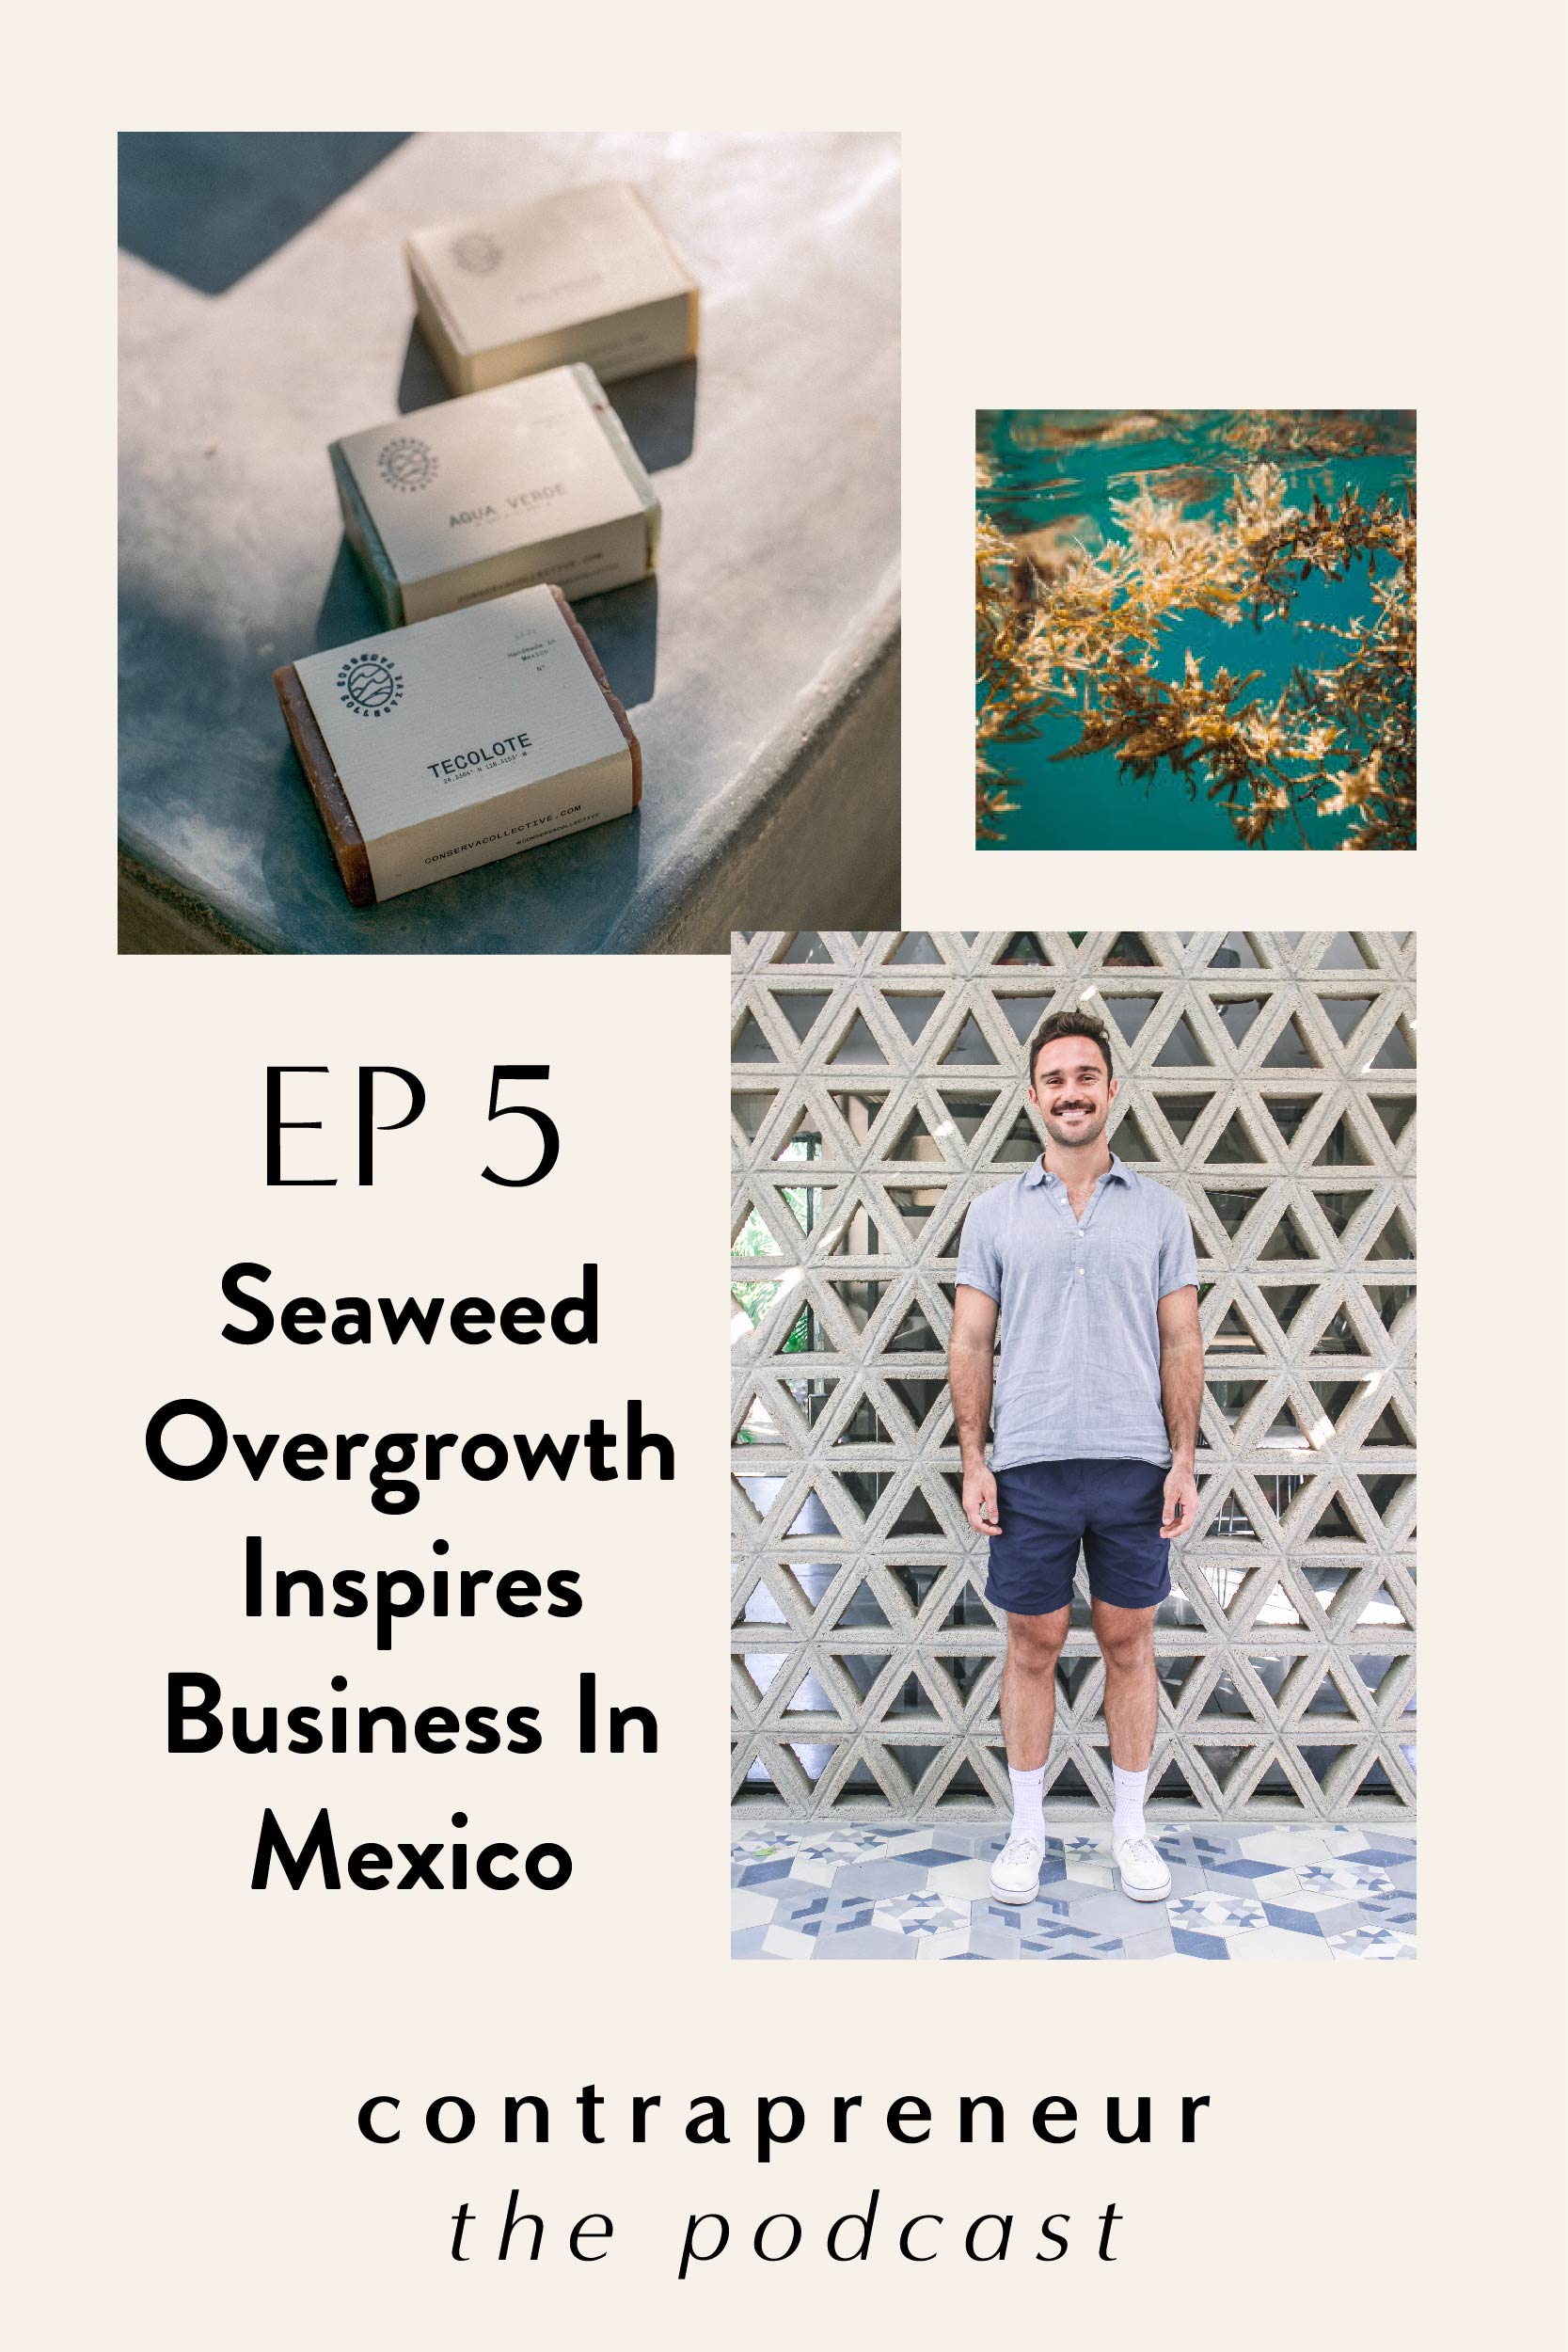 Seaweed Overgrowth In Mexico Inspires Business — Contrapreneur The Podcast